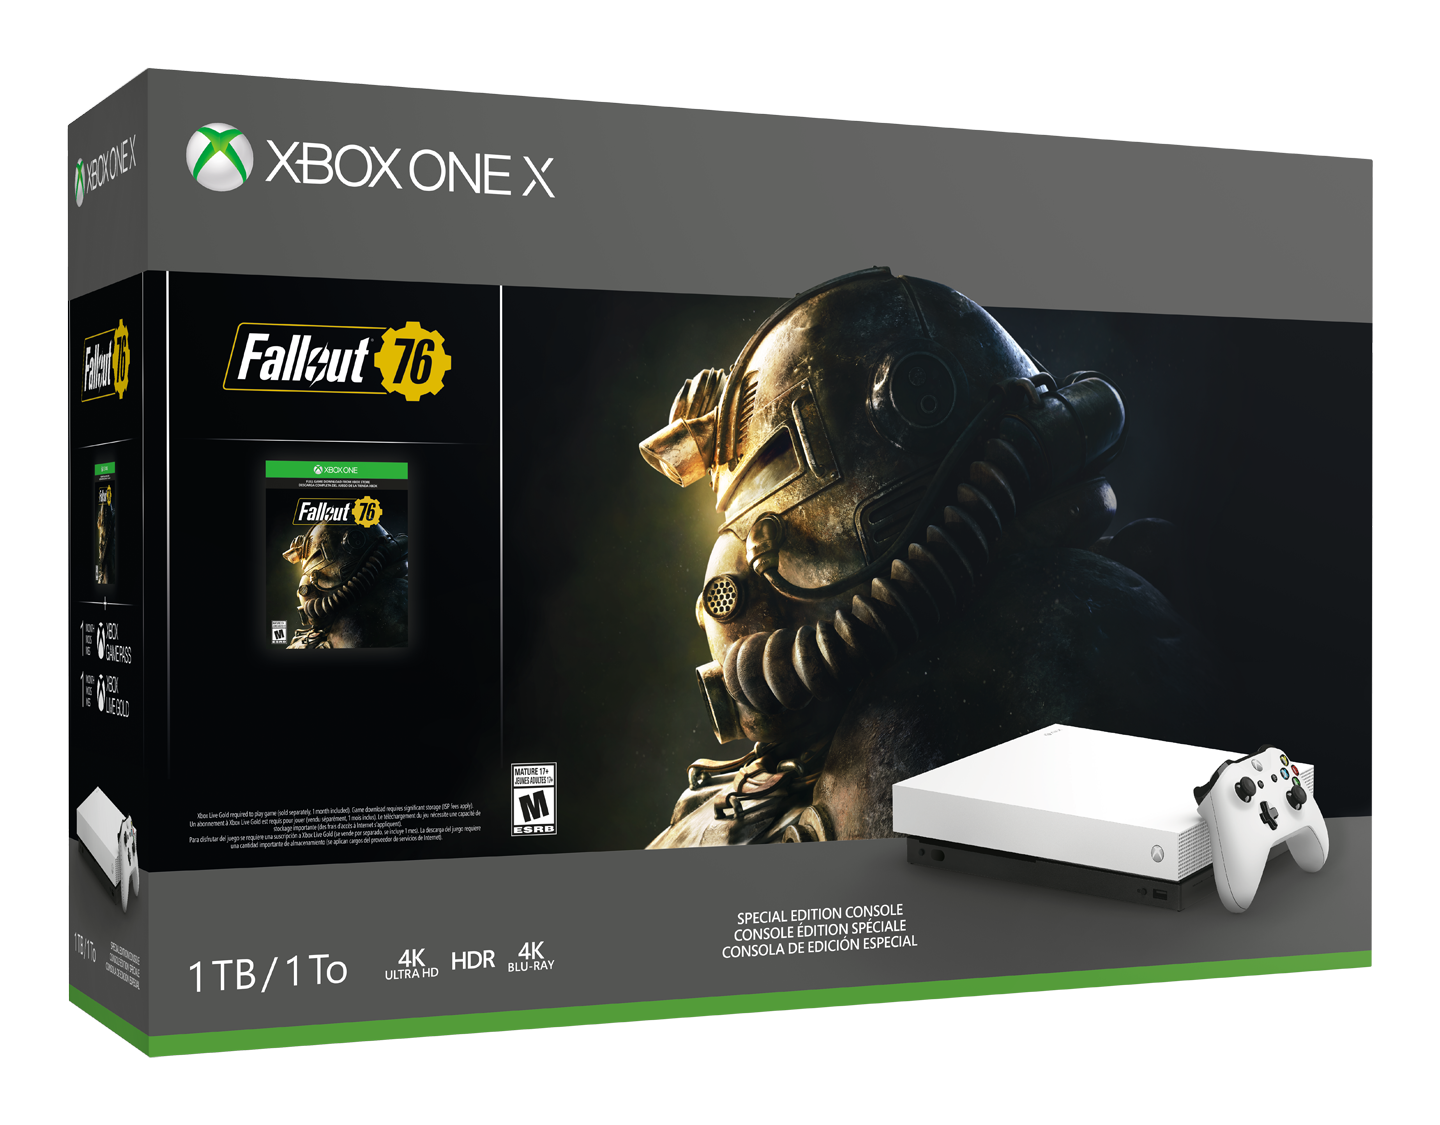 Xbox One X Robot White Special Edition Fallout 76 Bundle